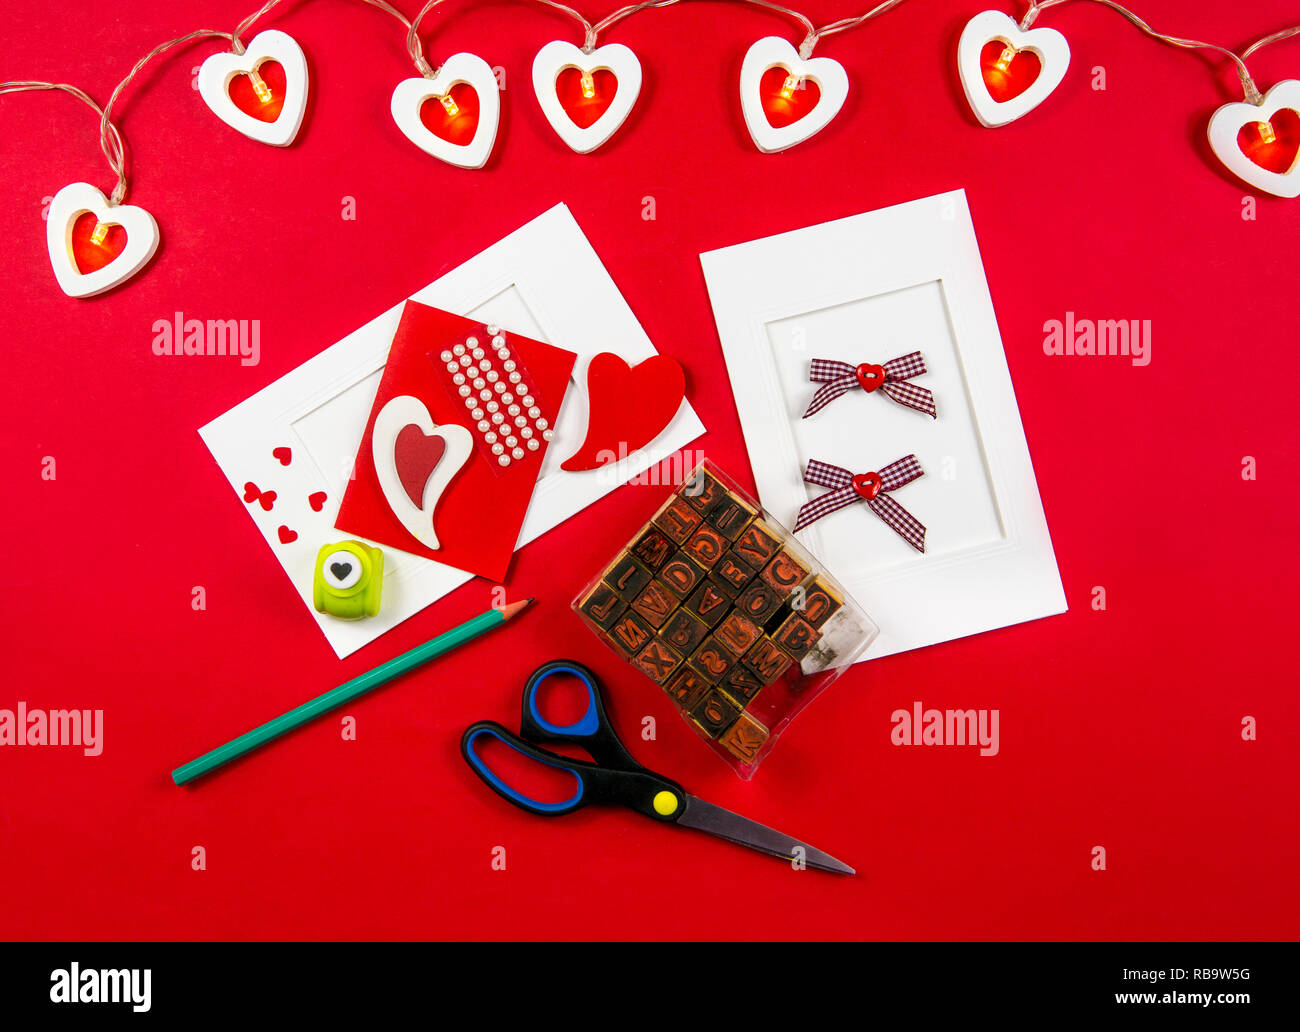 Making Valentine's day postcard concept. Made with love for friends and lover. Stock Photo